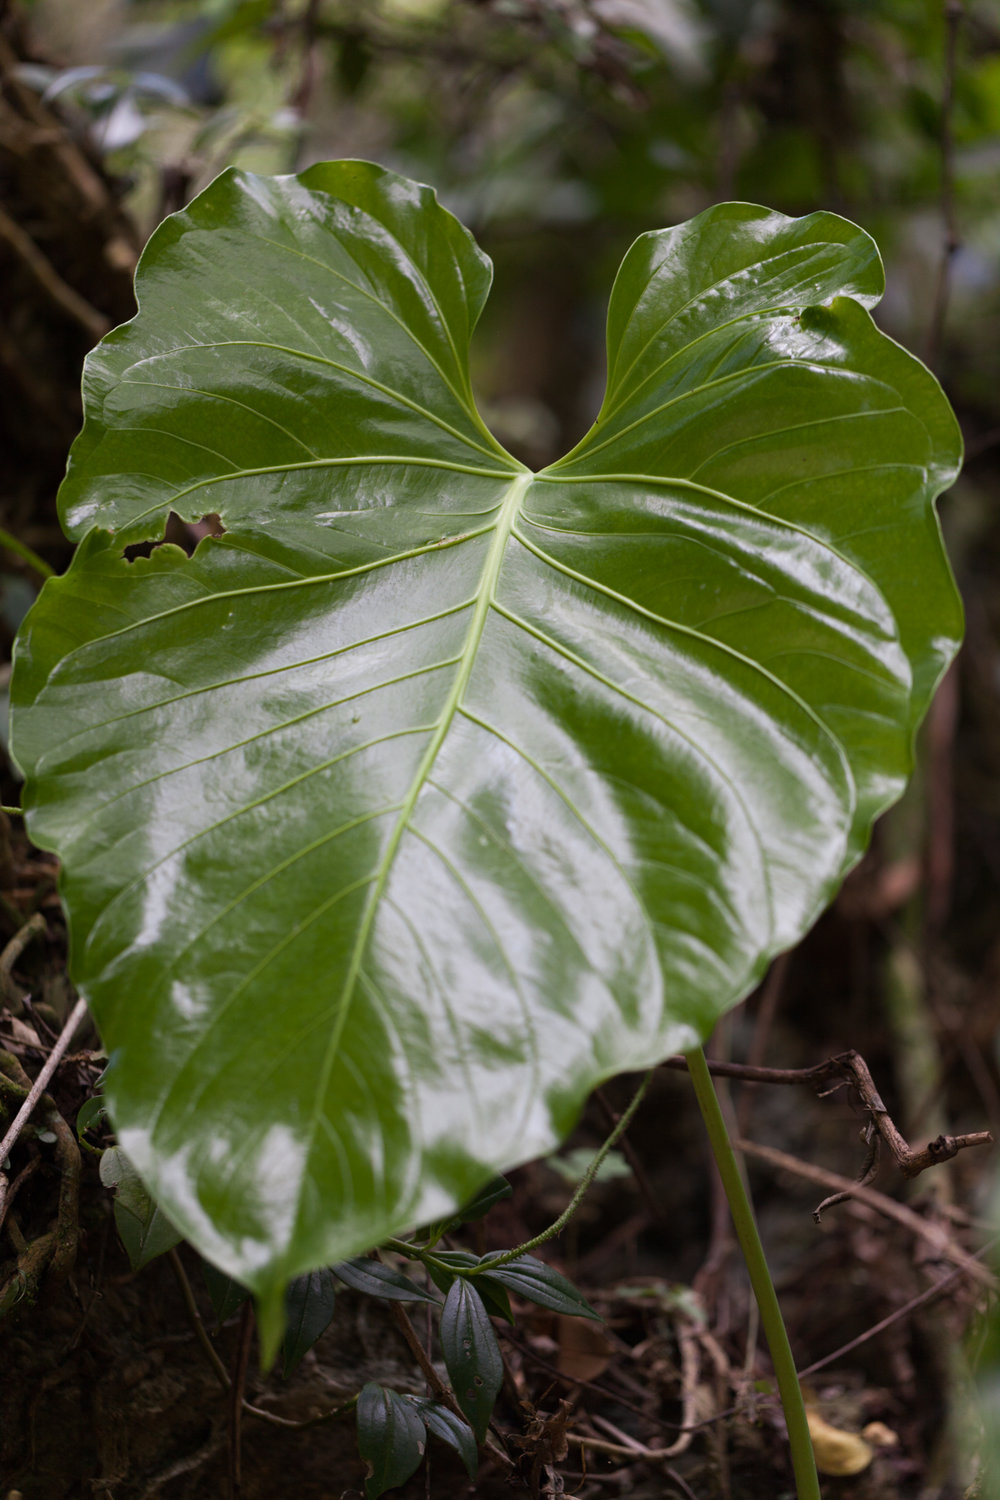 A new and shiny  Colocasia  displays its large leaf near the riverbed. Some  Peperomia  hide below it's umbrella-like leaf.